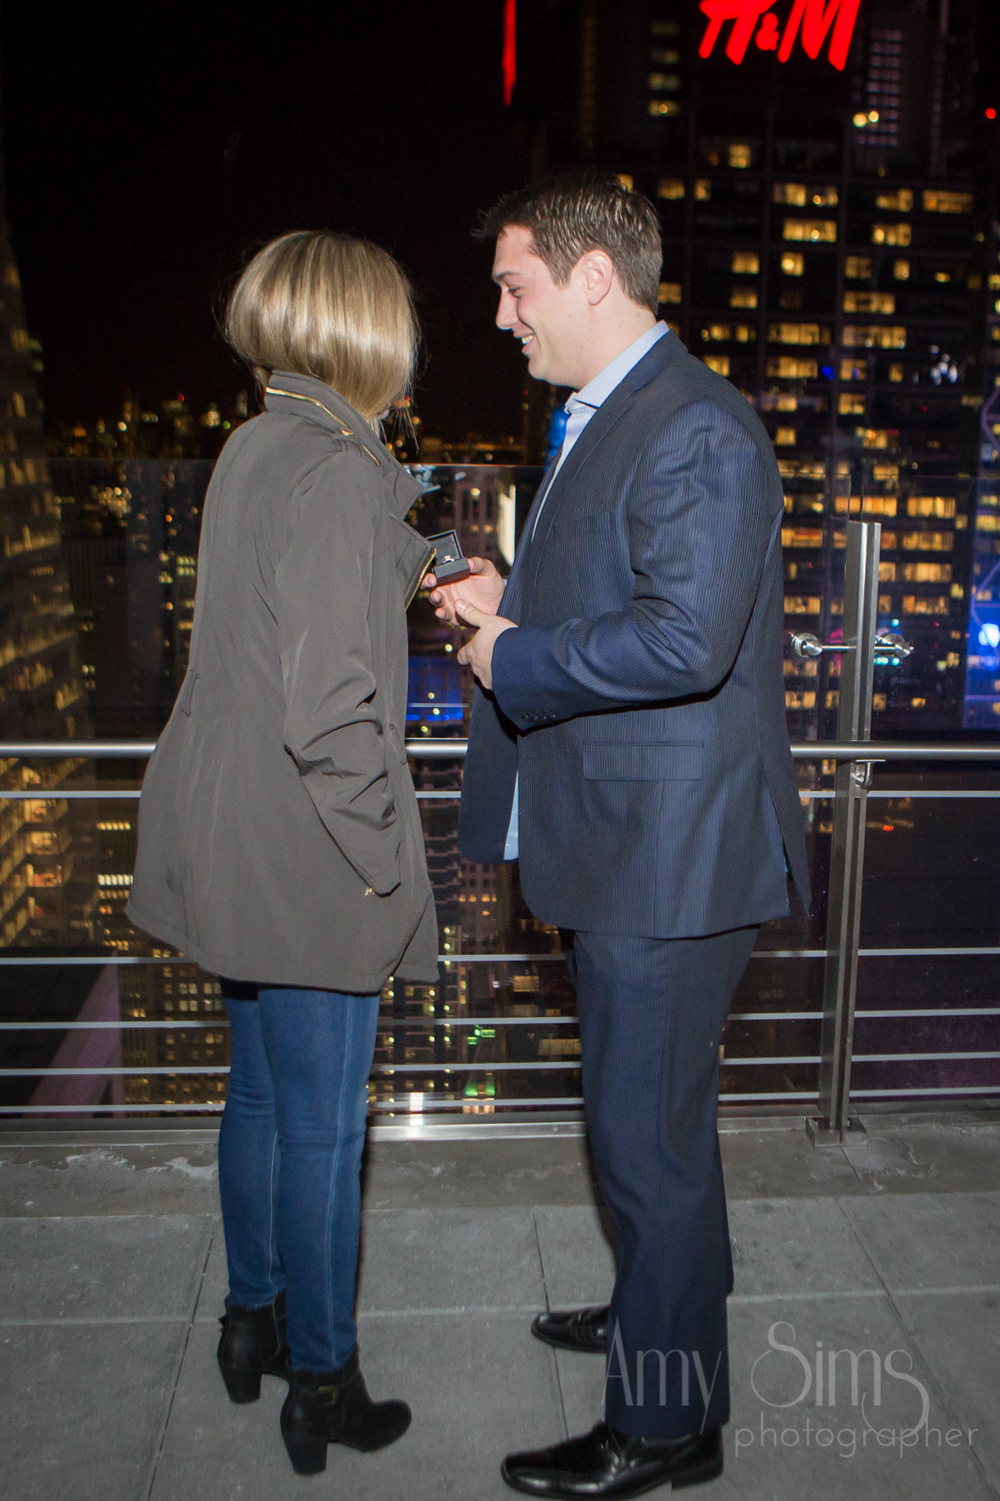 @Amy Sims Photography | New York Wedding Photography | Proposal | Bar 54 at Hyatt Times Square | New York Skyline